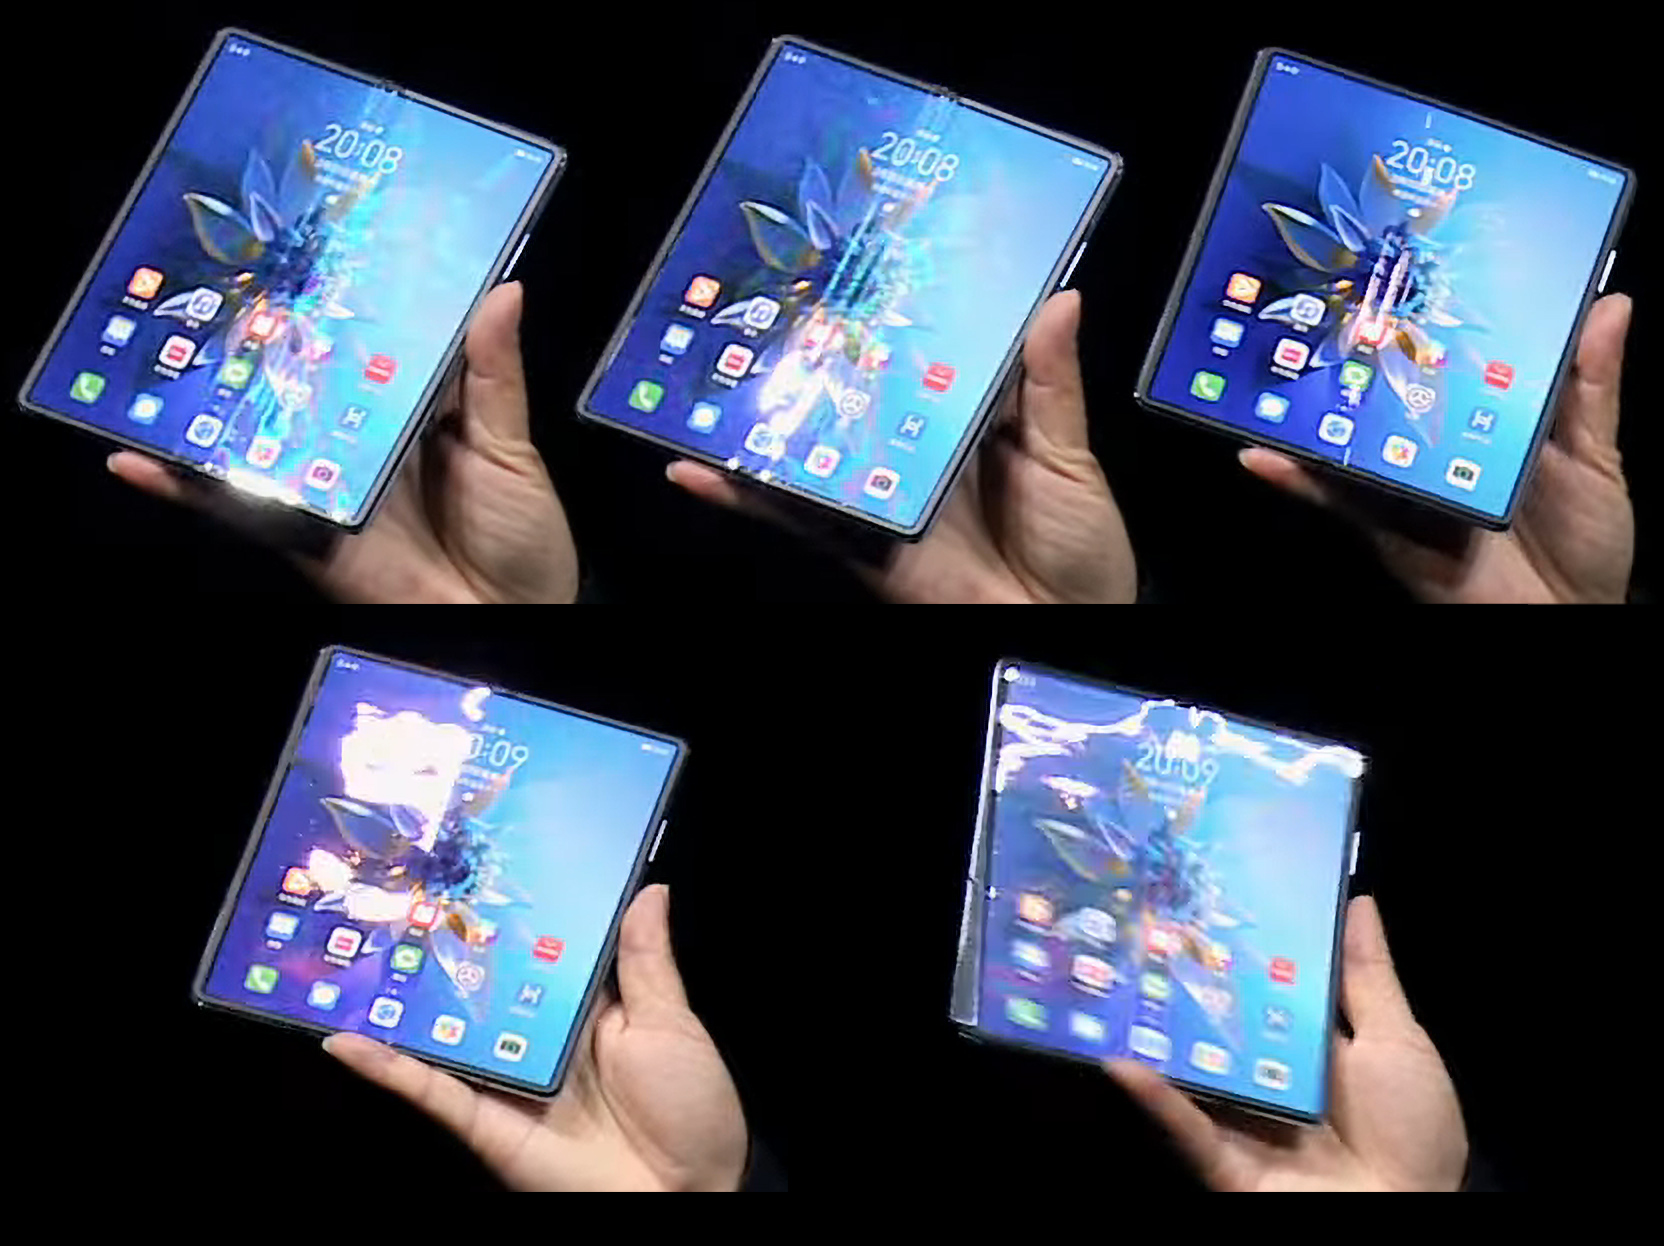 Real images of the display show off how uneven it is. The top row highlights the trench running down the middle of the phone. The bottom row shows off uneven reflections from the ripples in the rest of the display.